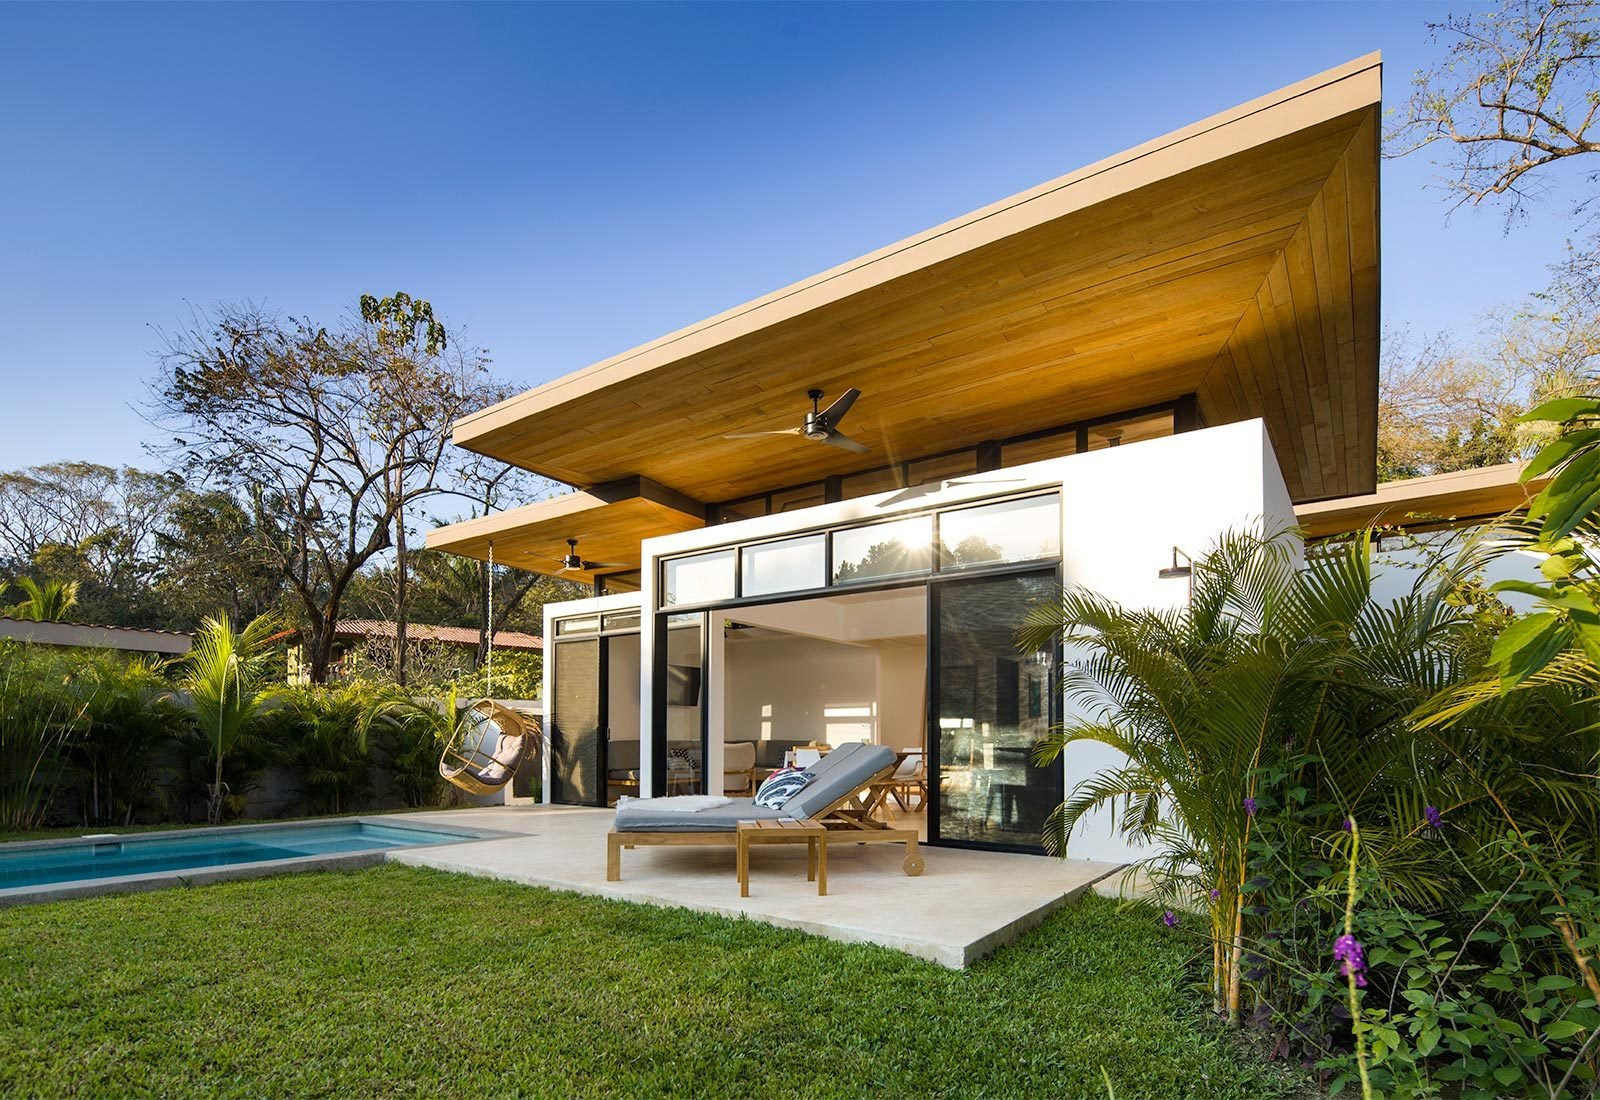 Outdoor, Back Yard, Small Pools, Tubs, Shower, Grass, and Trees  Nalu by Studio Saxe